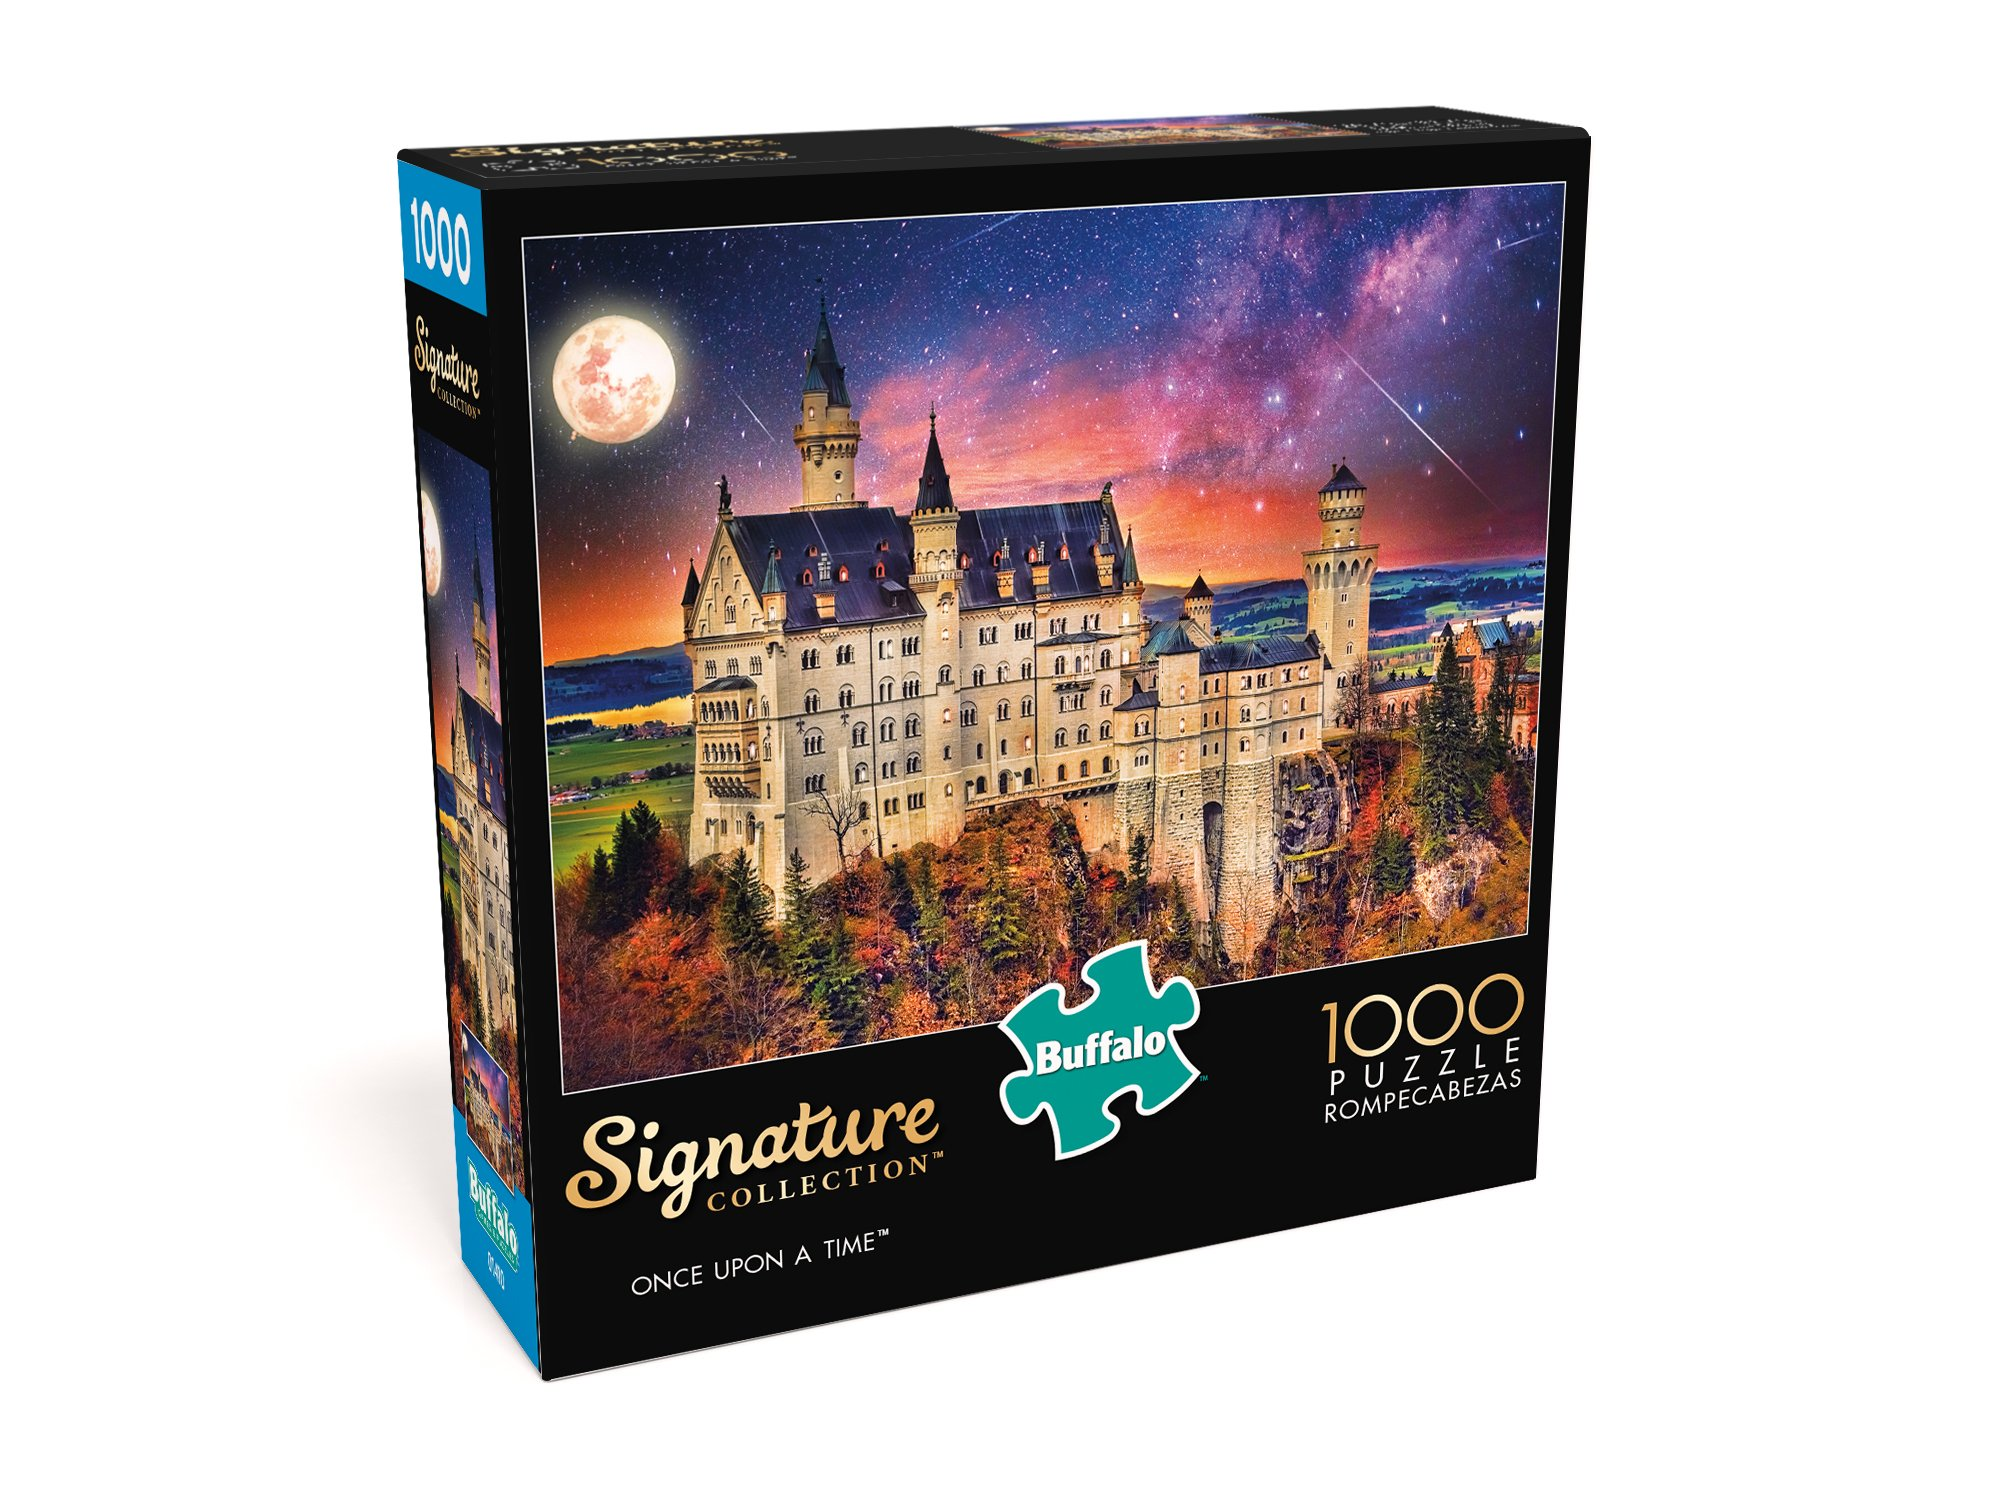 Buffalo Games - Signature Collection - Once Upon a Time - 1000 Piece Jigsaw Puzzle by Buffalo Games (Image #3)